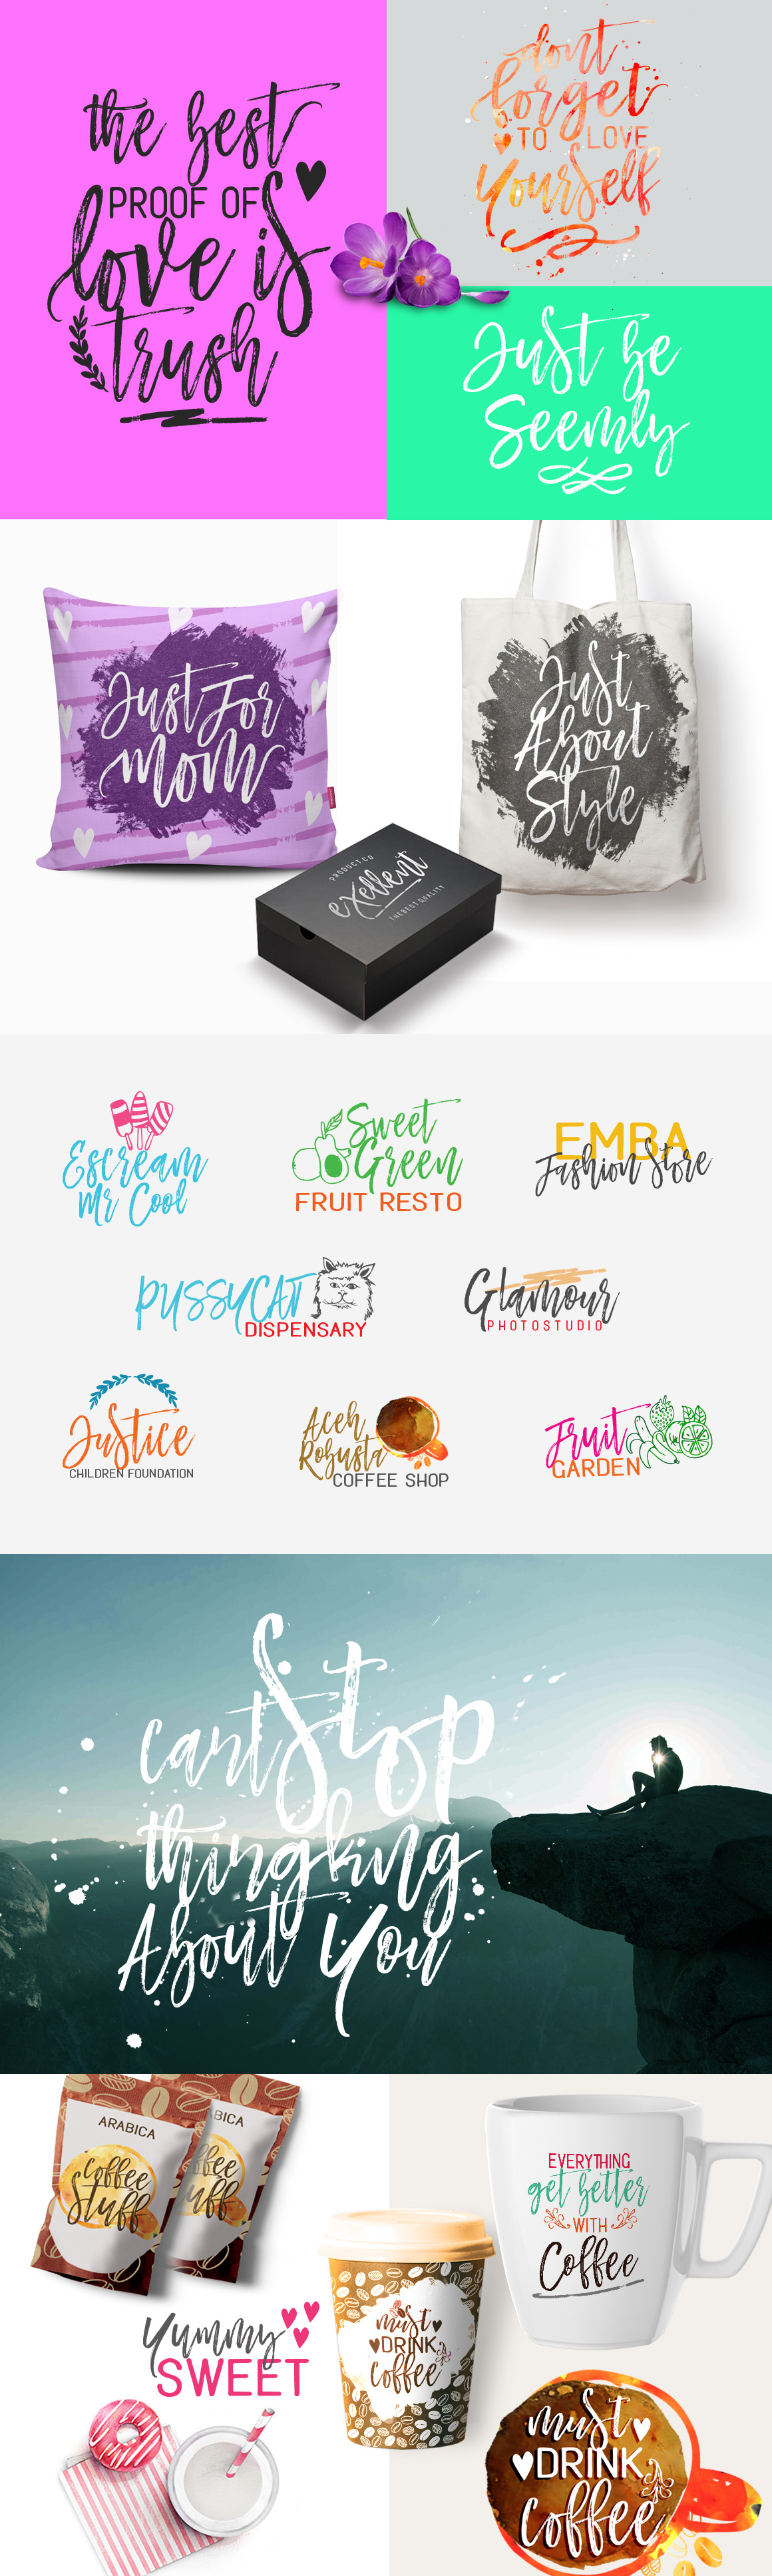 Mustache Typeface Trio, Brush - Smooth - Rounded on Behance